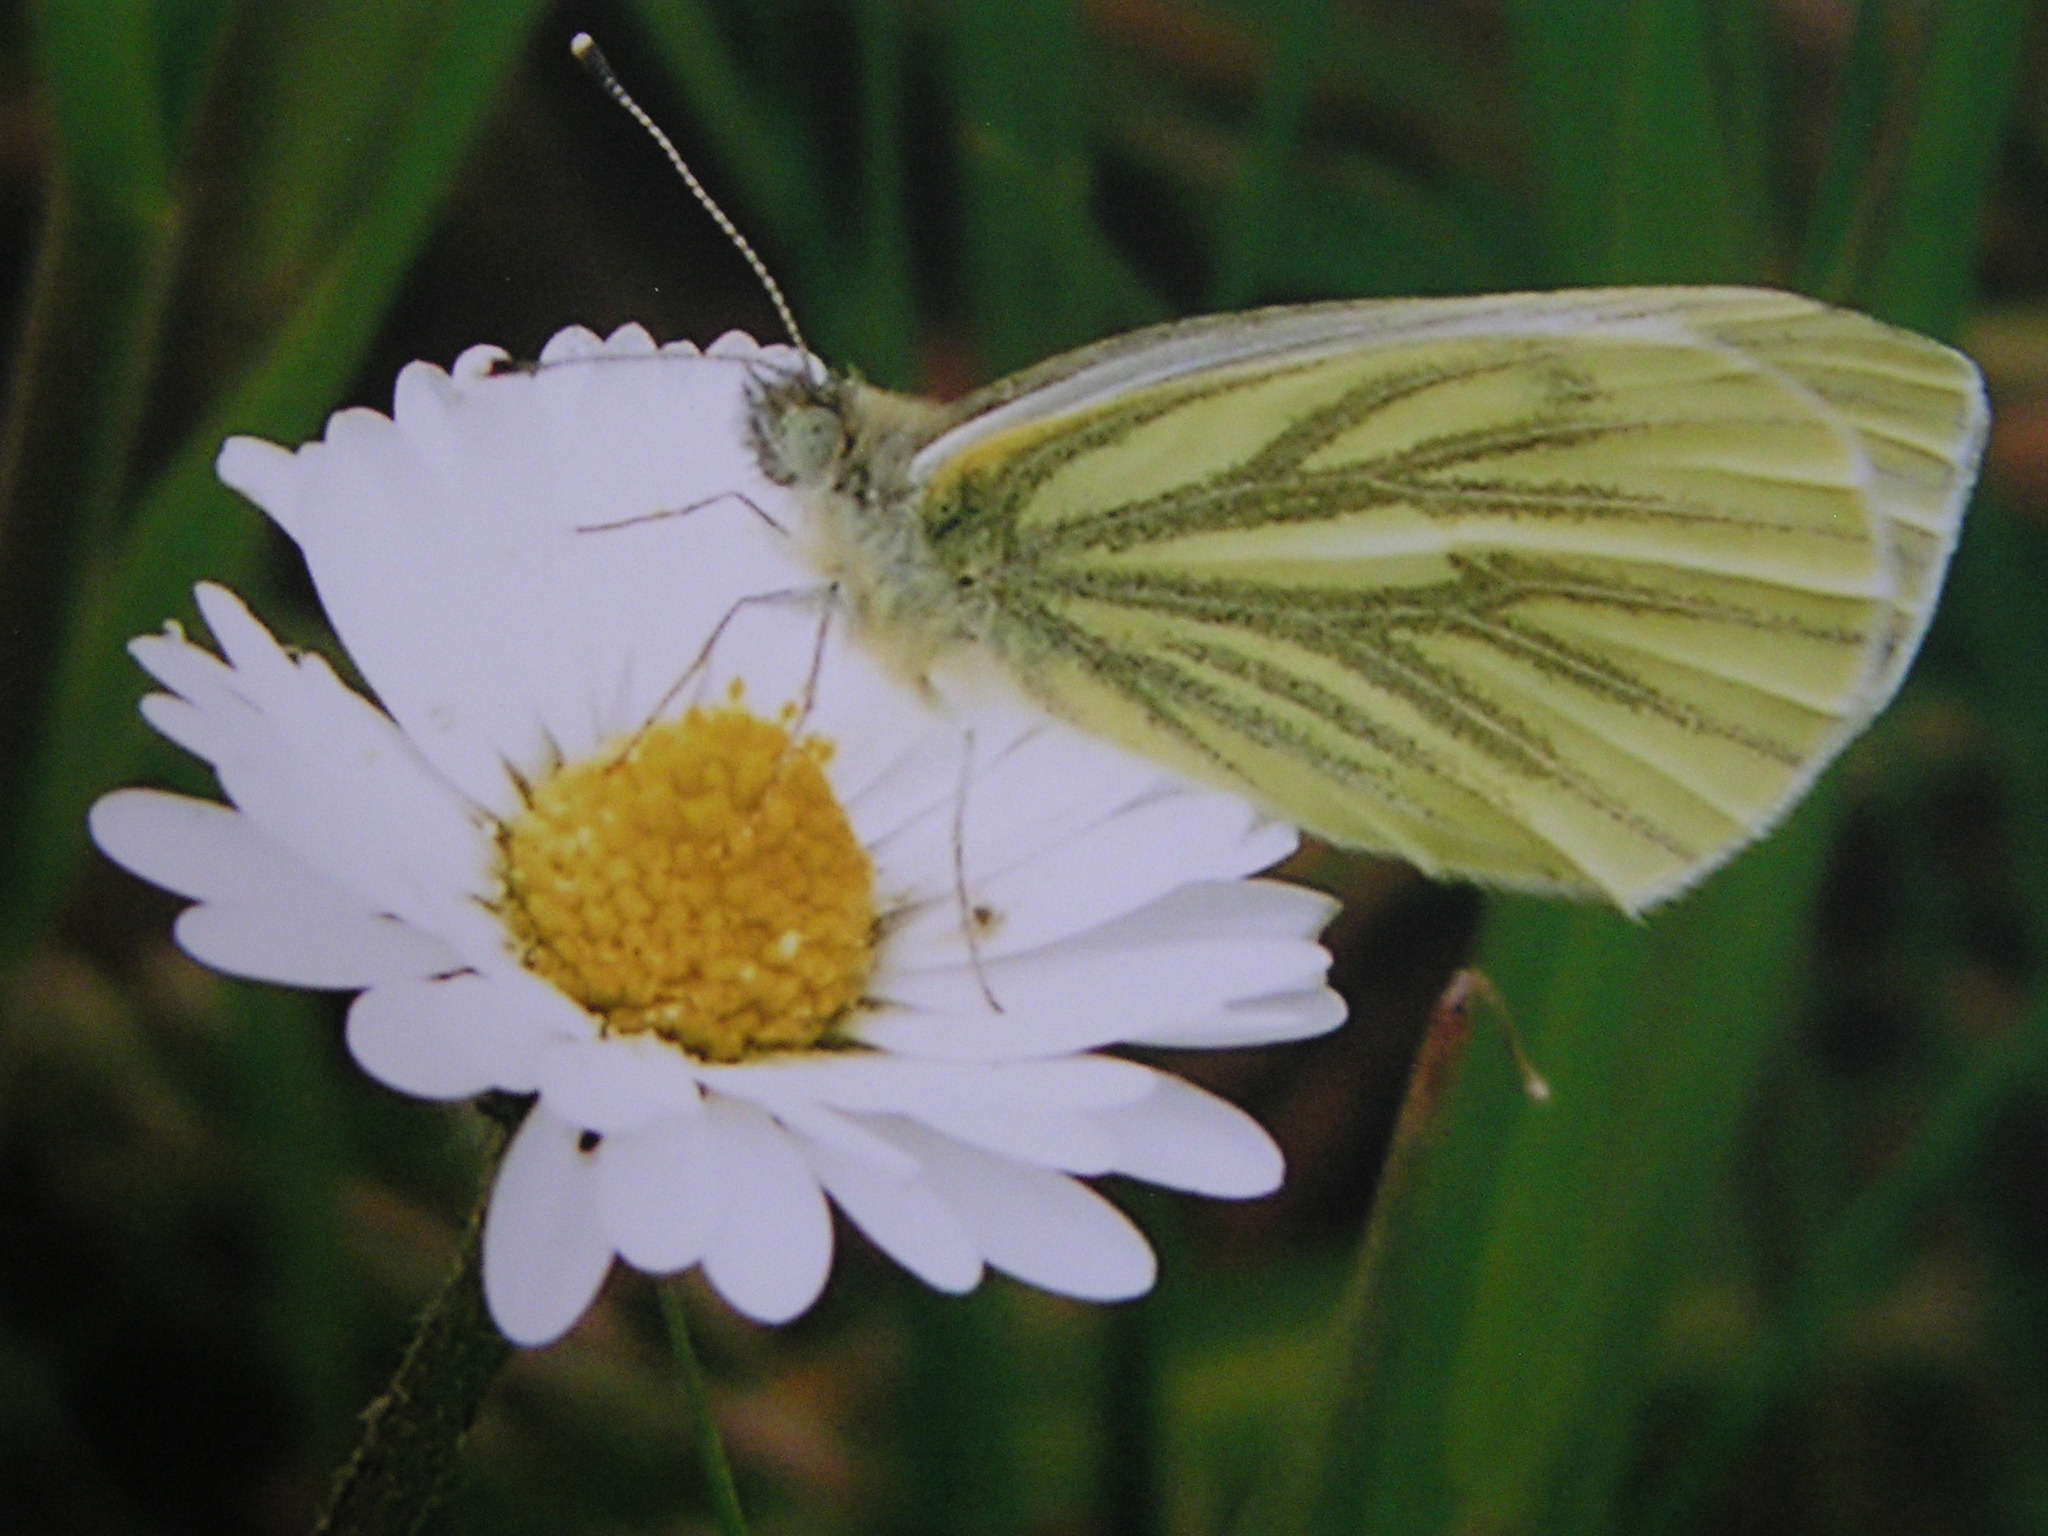 Widespread use of pesticides hitting our butterfly species